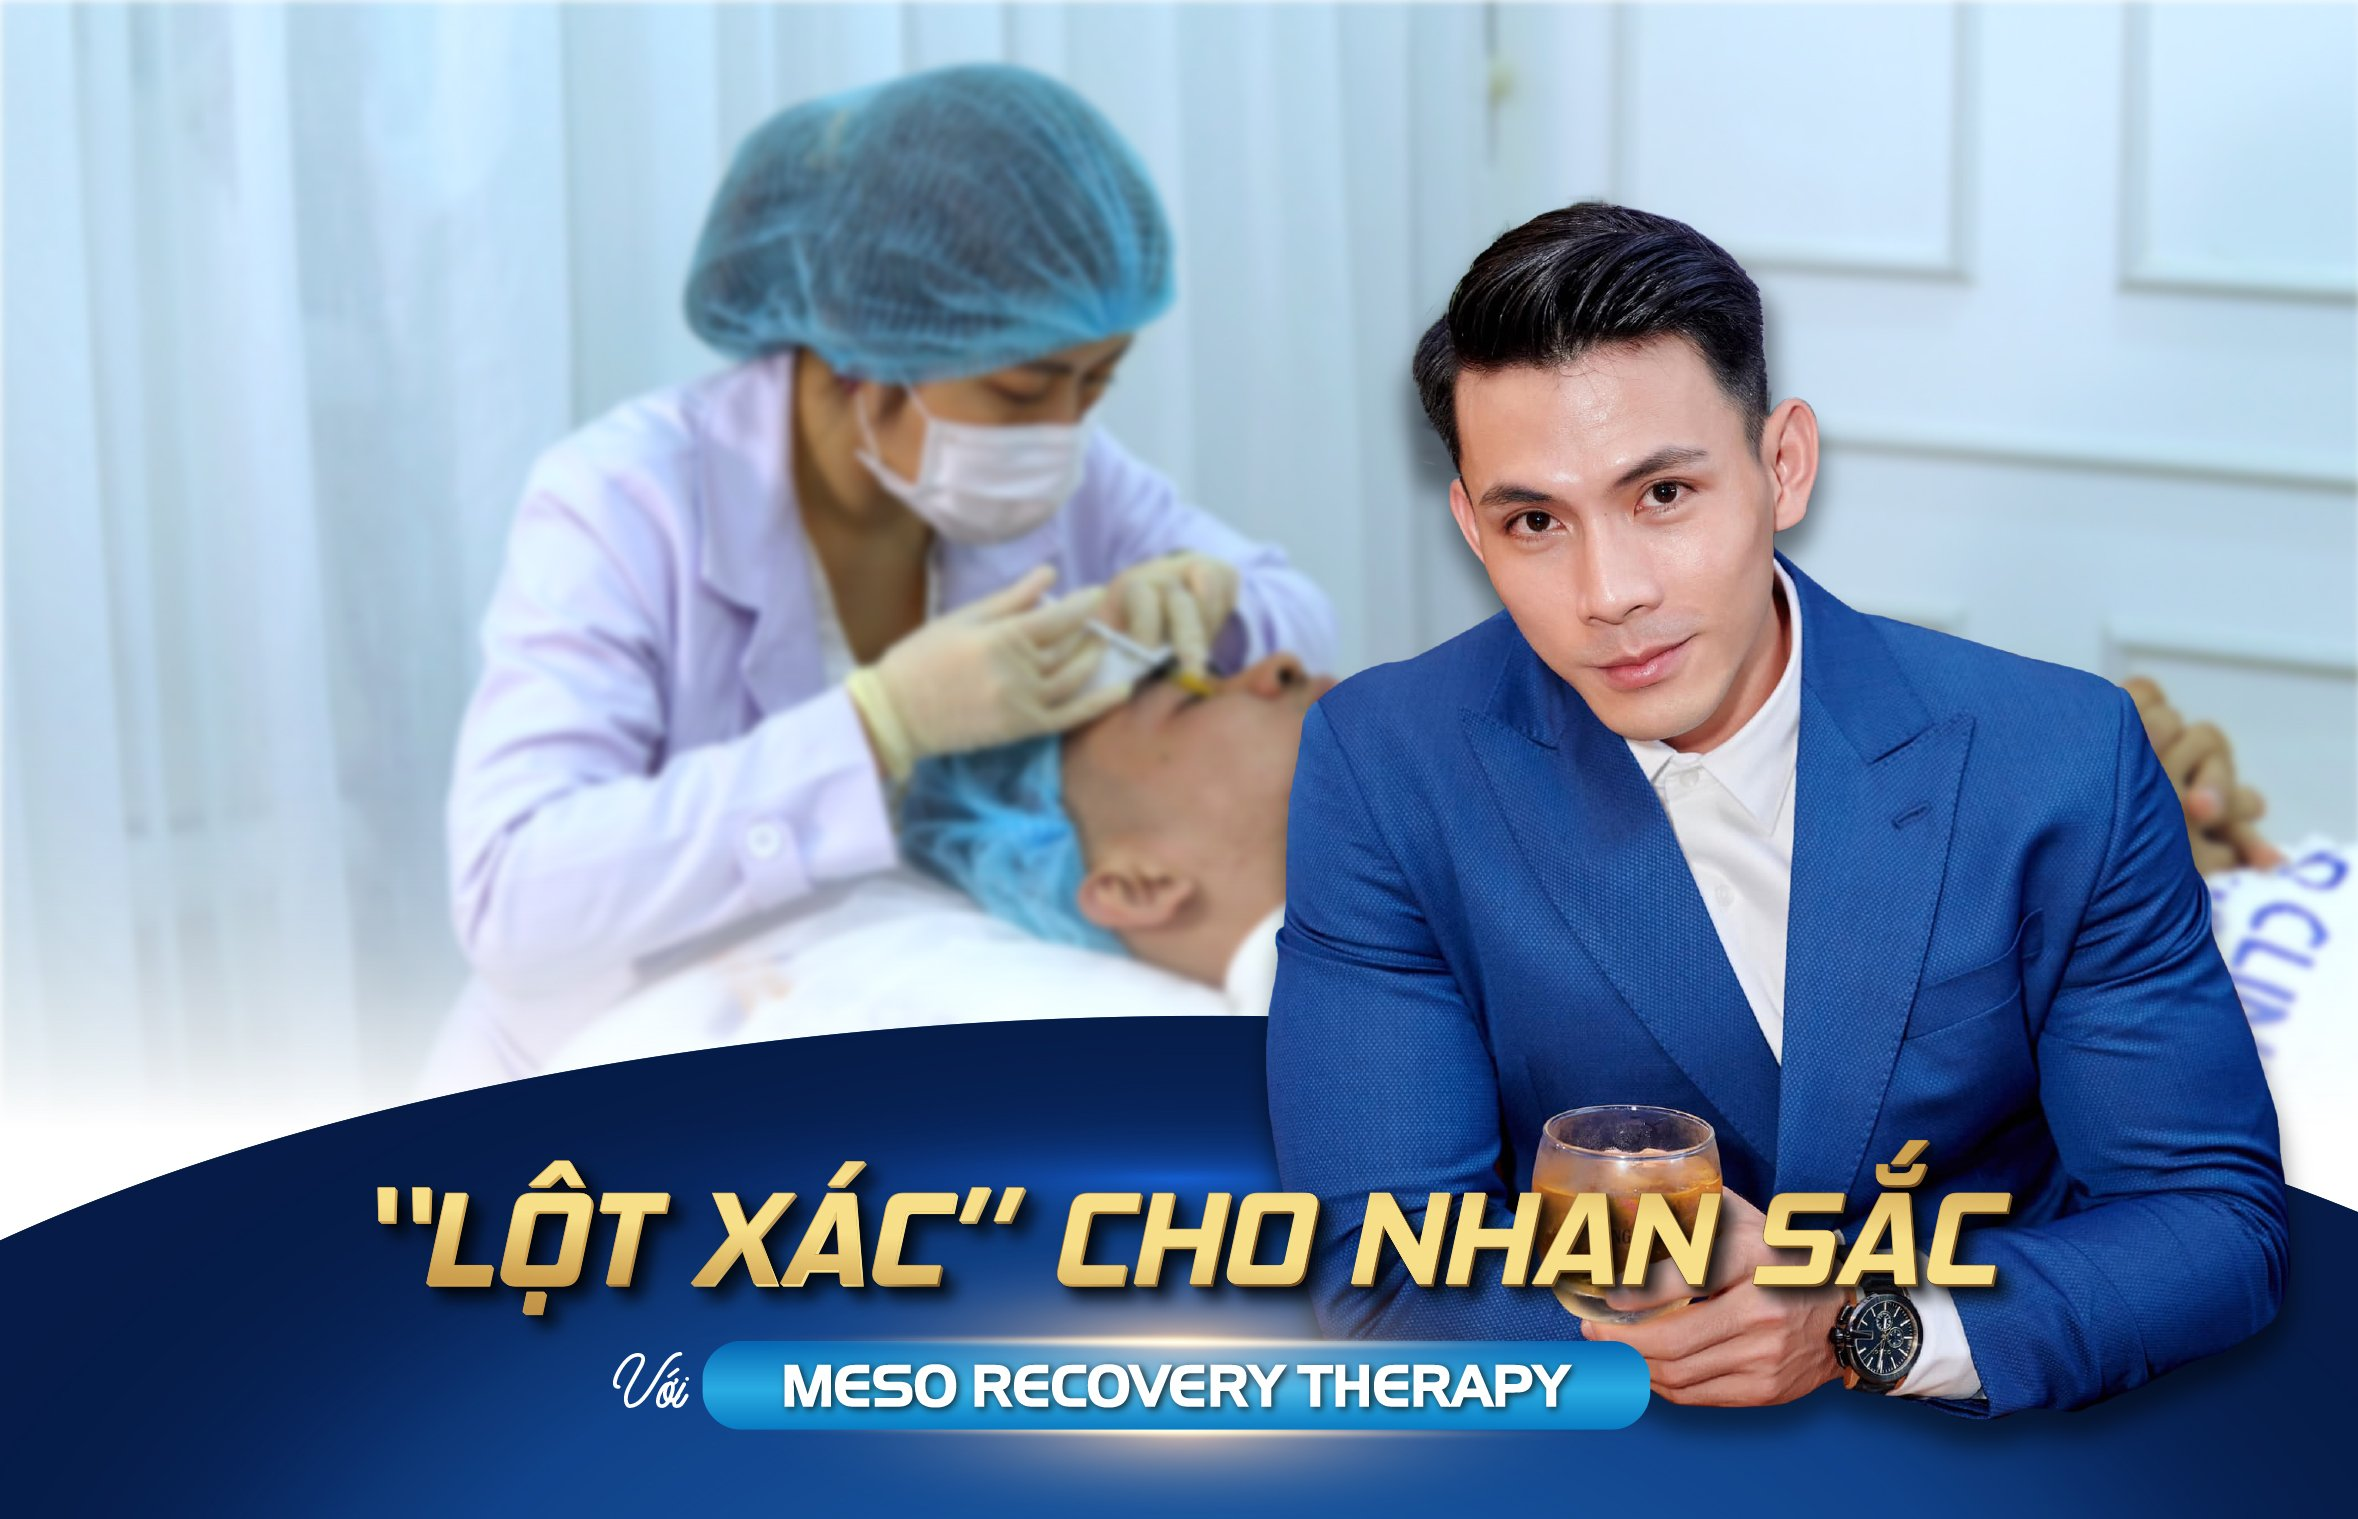 PHỤC HỒI DA RECOVERY THERAPY